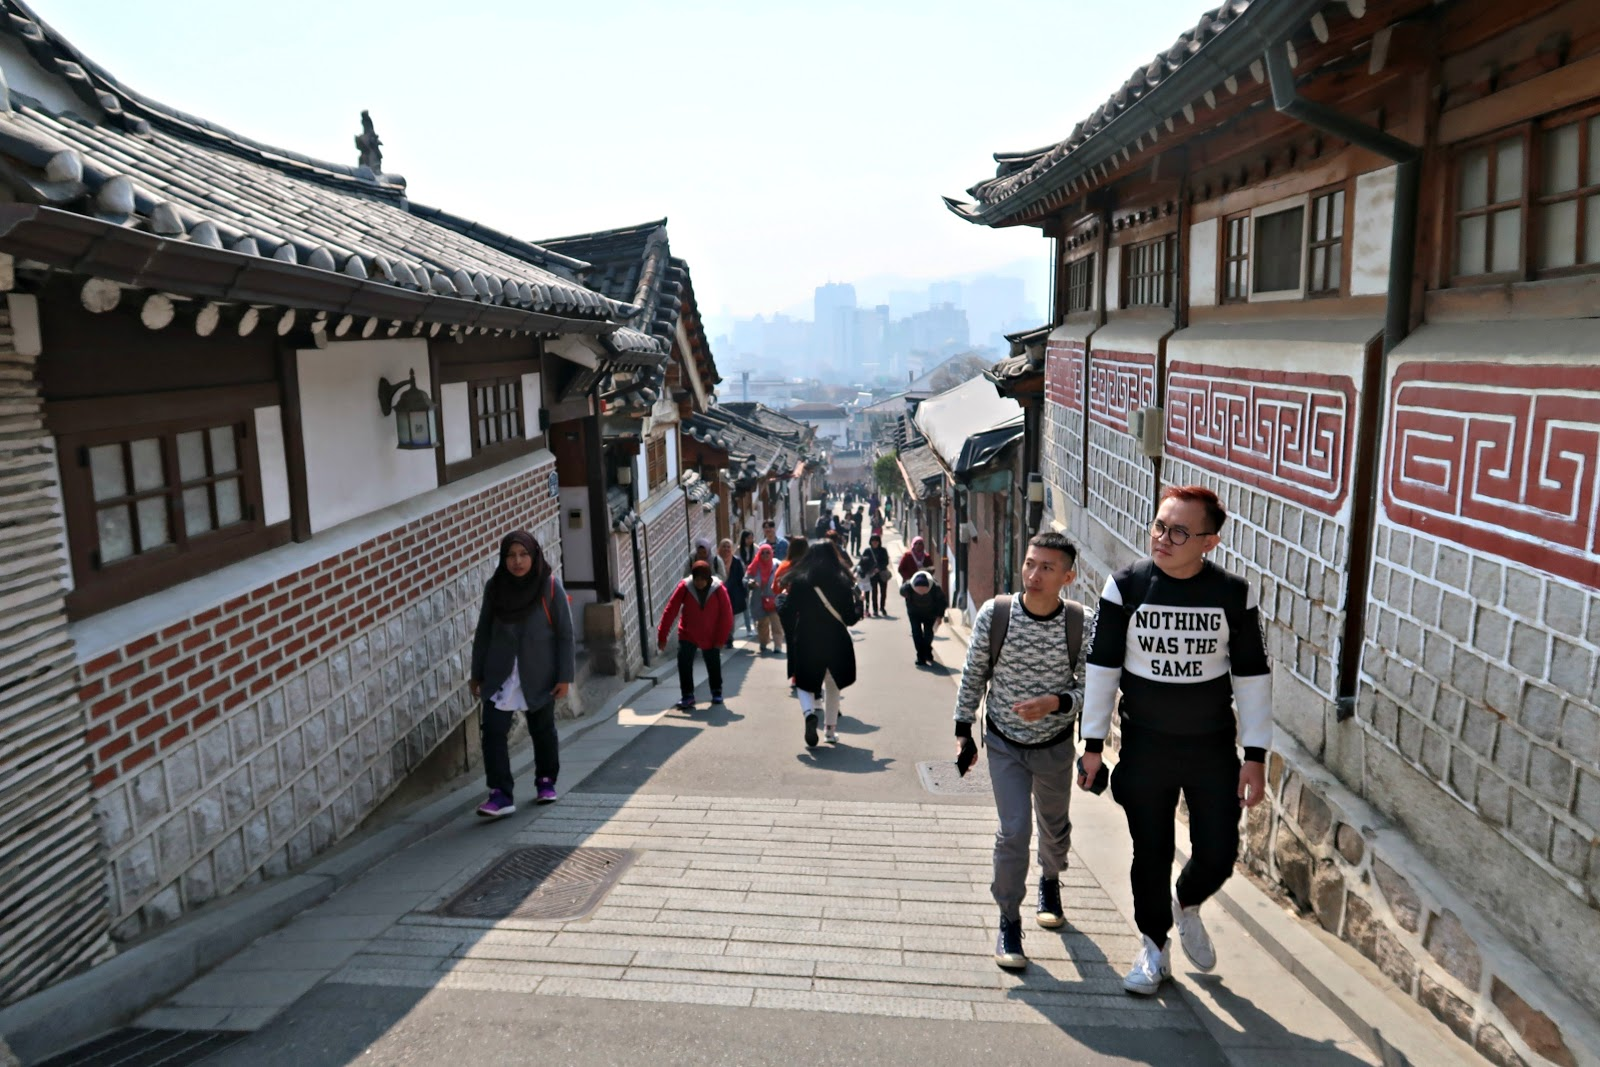 top things to do in seoul south korea, n seoul tower, gwanghwamun, Bukchon Hanok Village, myeongdong street, dongdaemun, namdaemun, korean street food, review, itinerary, seoul travel guide, cheonggyecheon stream